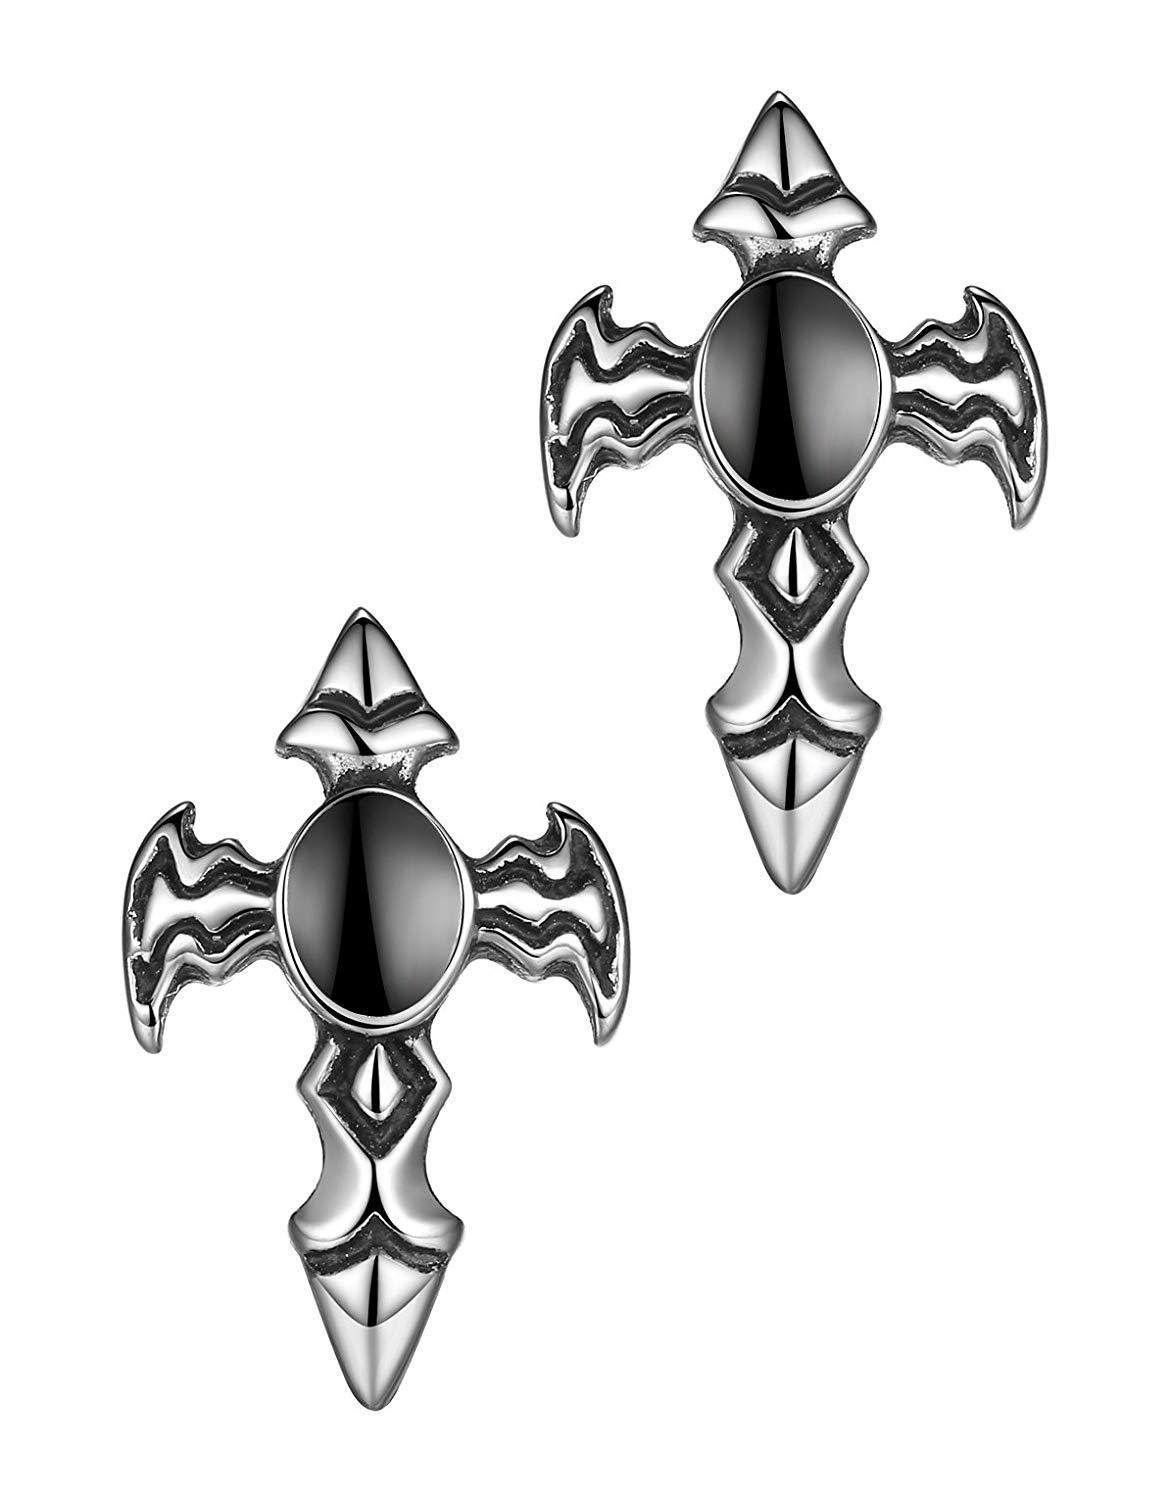 Men's Stainless Steel Fleur-de-lis Wing Cross Stud Earrings Aae018he @ Sons of Odin™ - Jewelry on